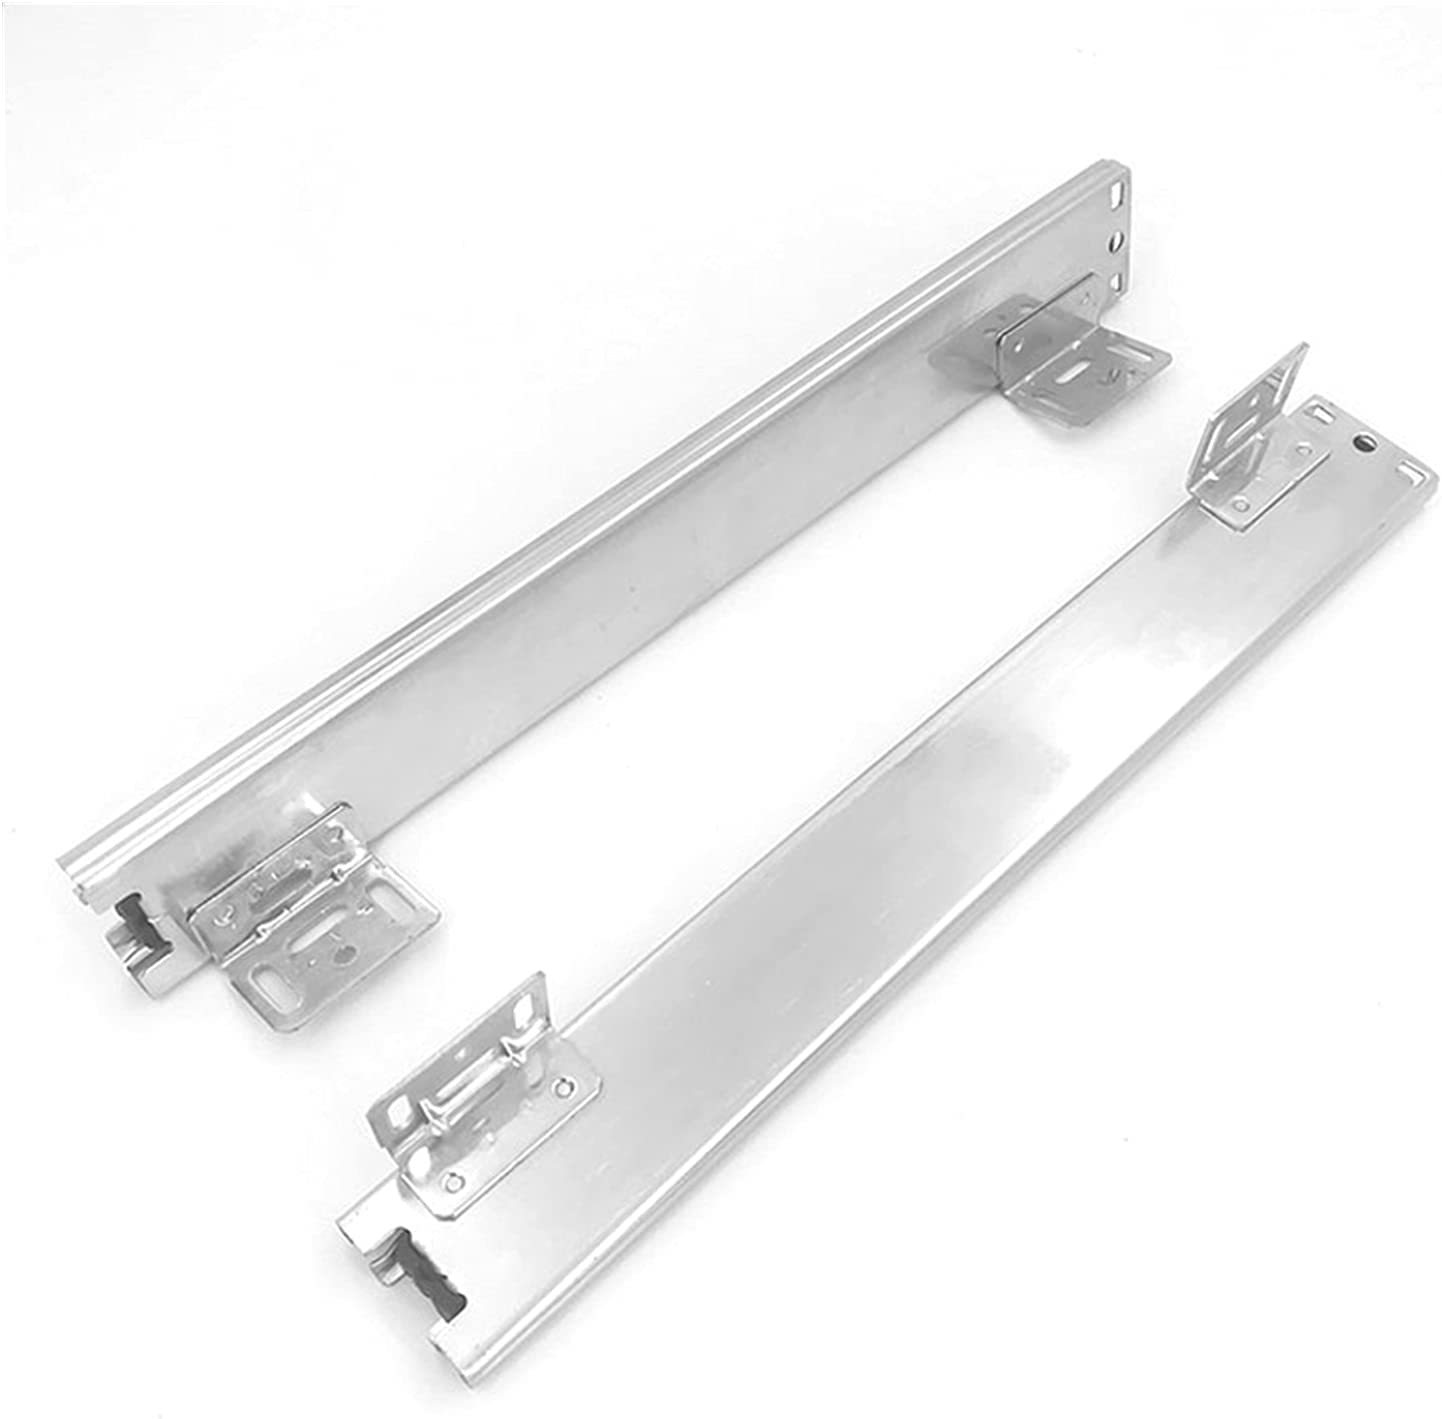 Overseas parallel import regular item Bearing Capacity Drawer Rail Excellence Slide Close Sstain Soft